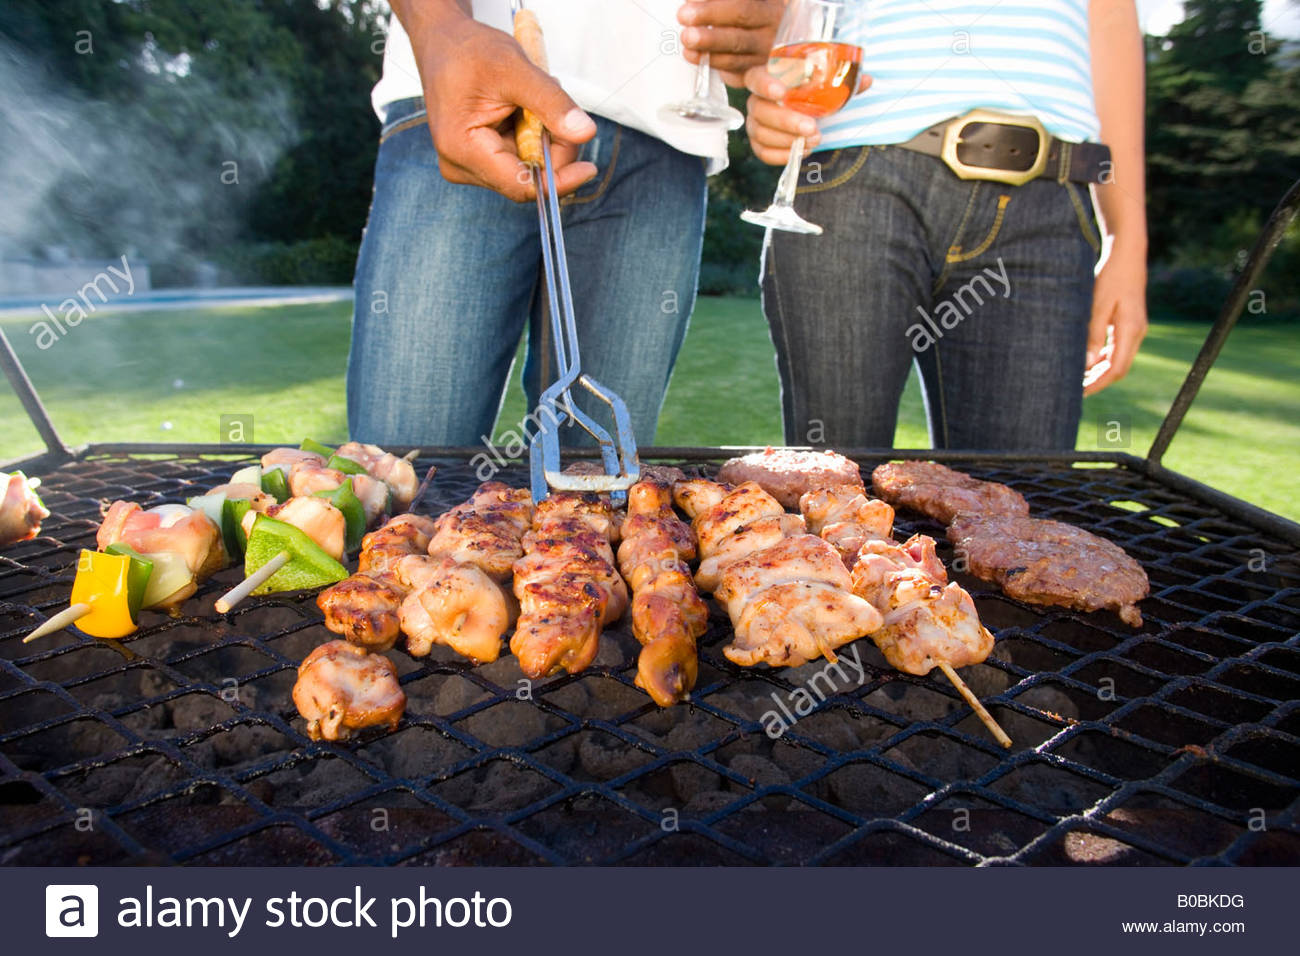 paar beim grillen im freien grill mittelteil standby stockfoto bild 17467116 alamy. Black Bedroom Furniture Sets. Home Design Ideas